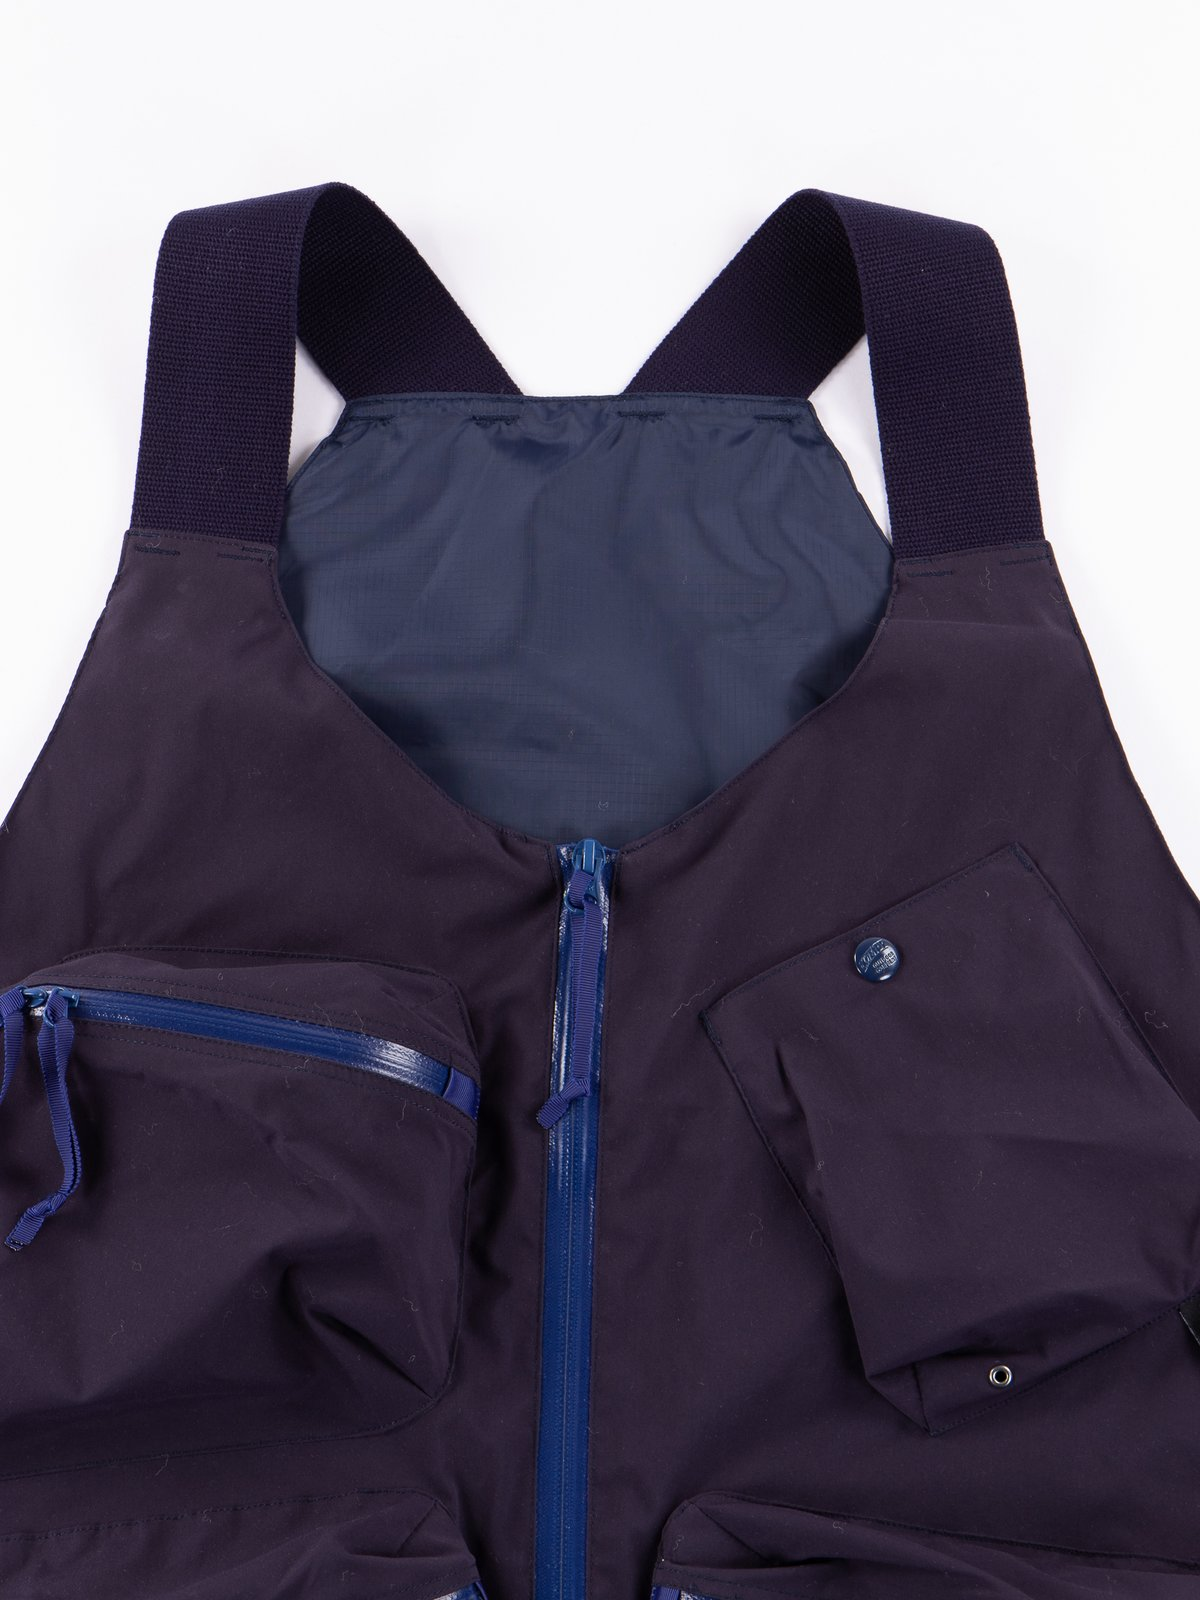 Navy Huntish Mod Vest - Image 3